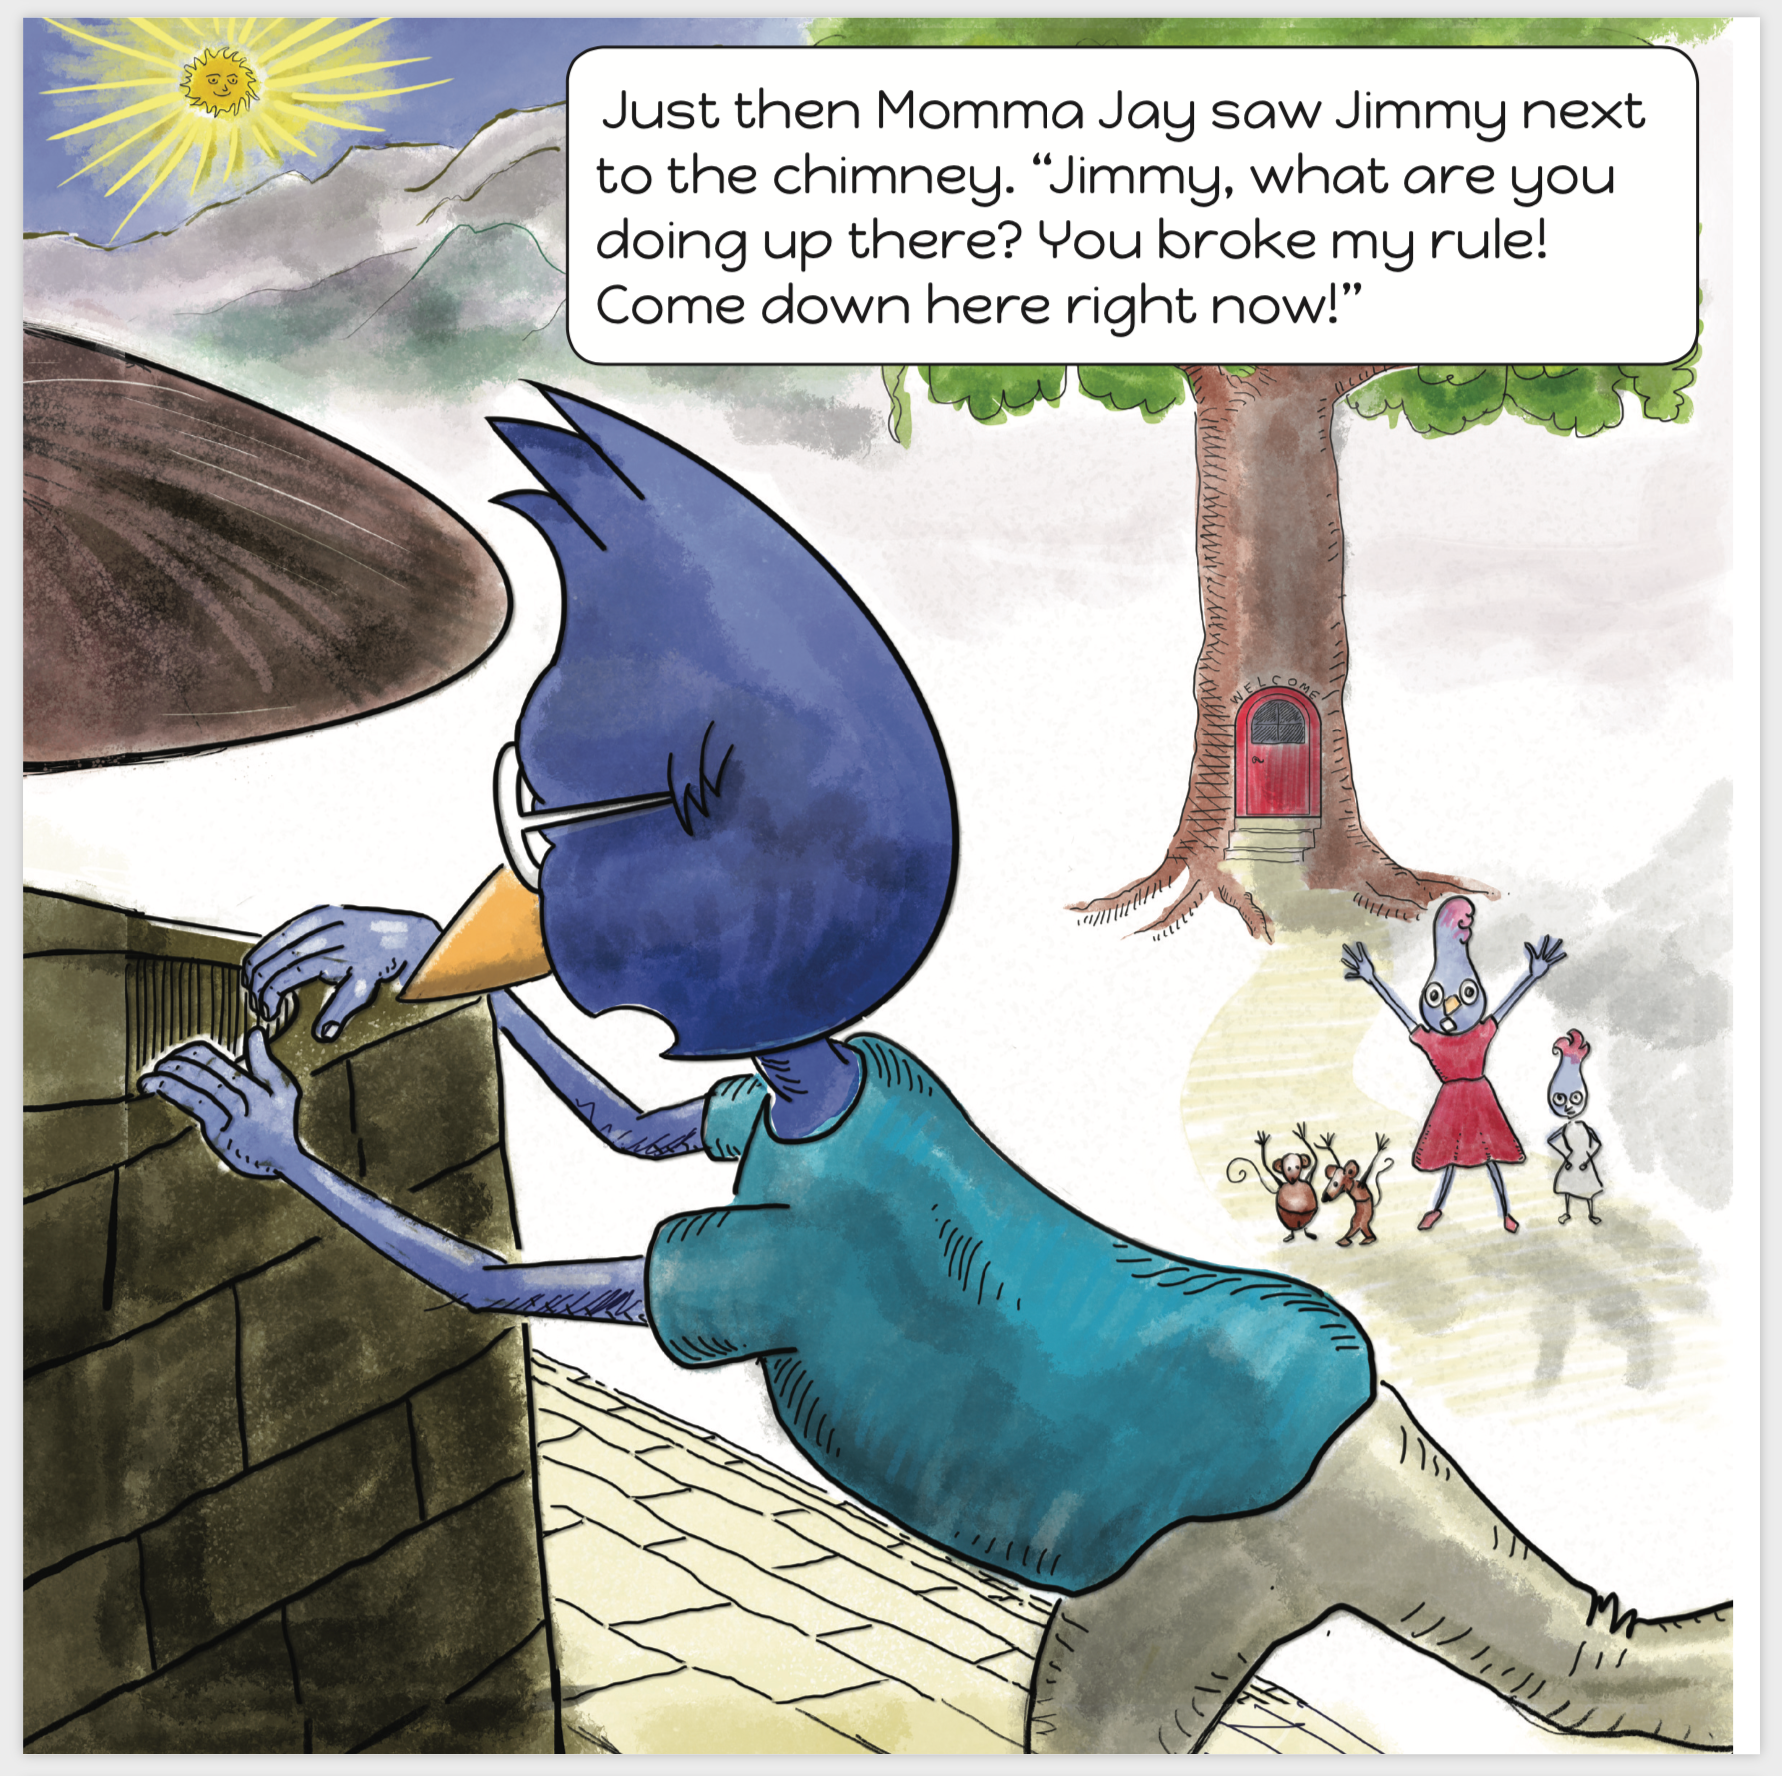 yesterday_image_in_pdf_blog.png repaired image, Procreate, Bowker, ISBN monopoly